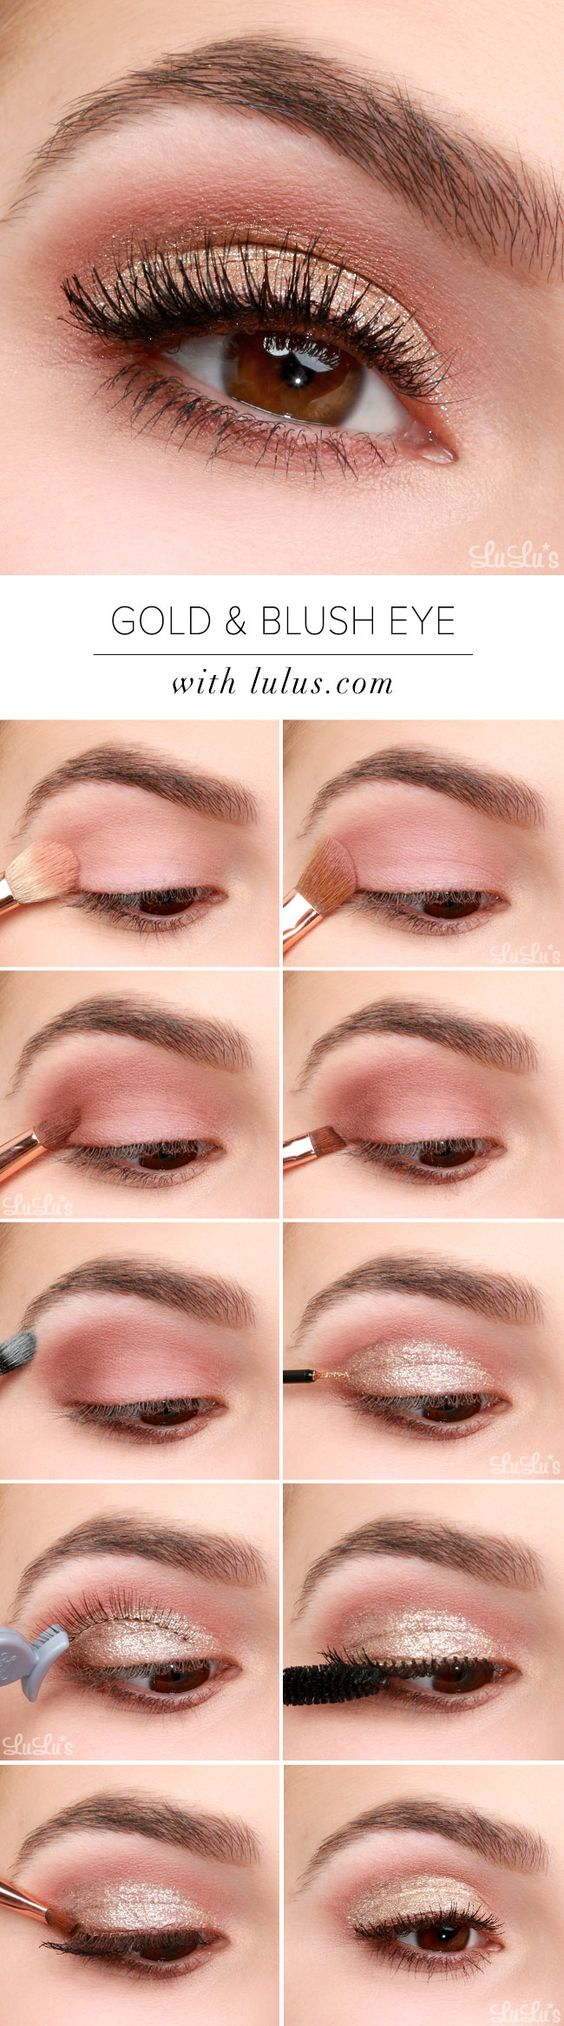 Fashionble Natural Eye Makeup Tutorials for Work - Styles Weekly